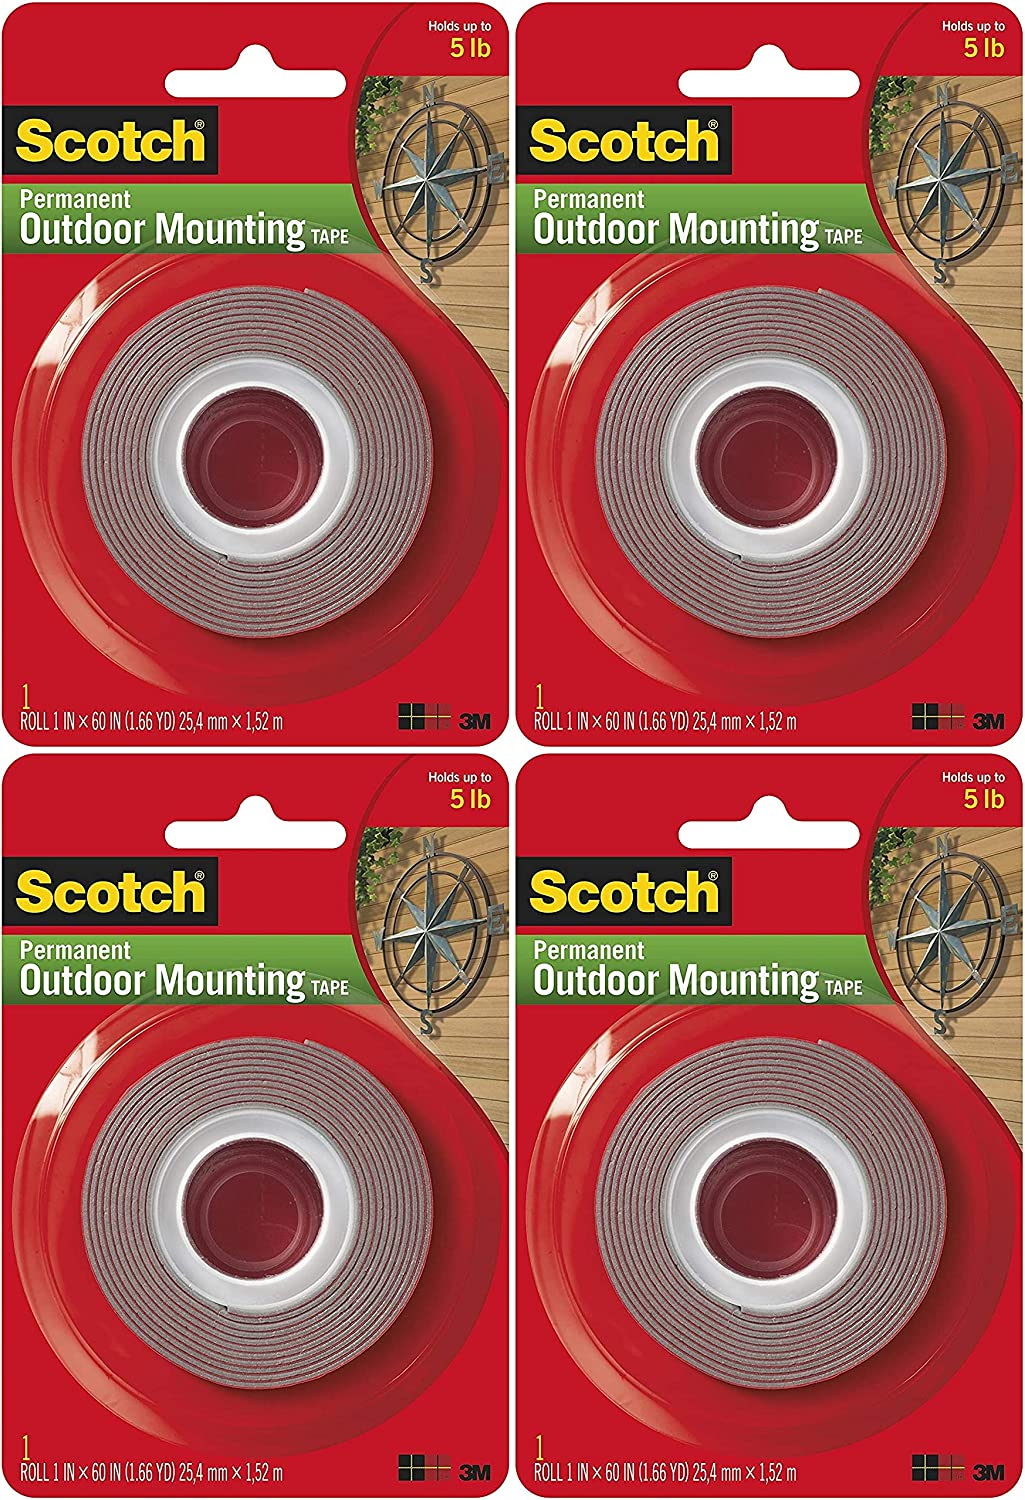 1 in Holds 5 lbs x 60 in Pack of 2 Scotch Permanent Outdoor Mounting Tape